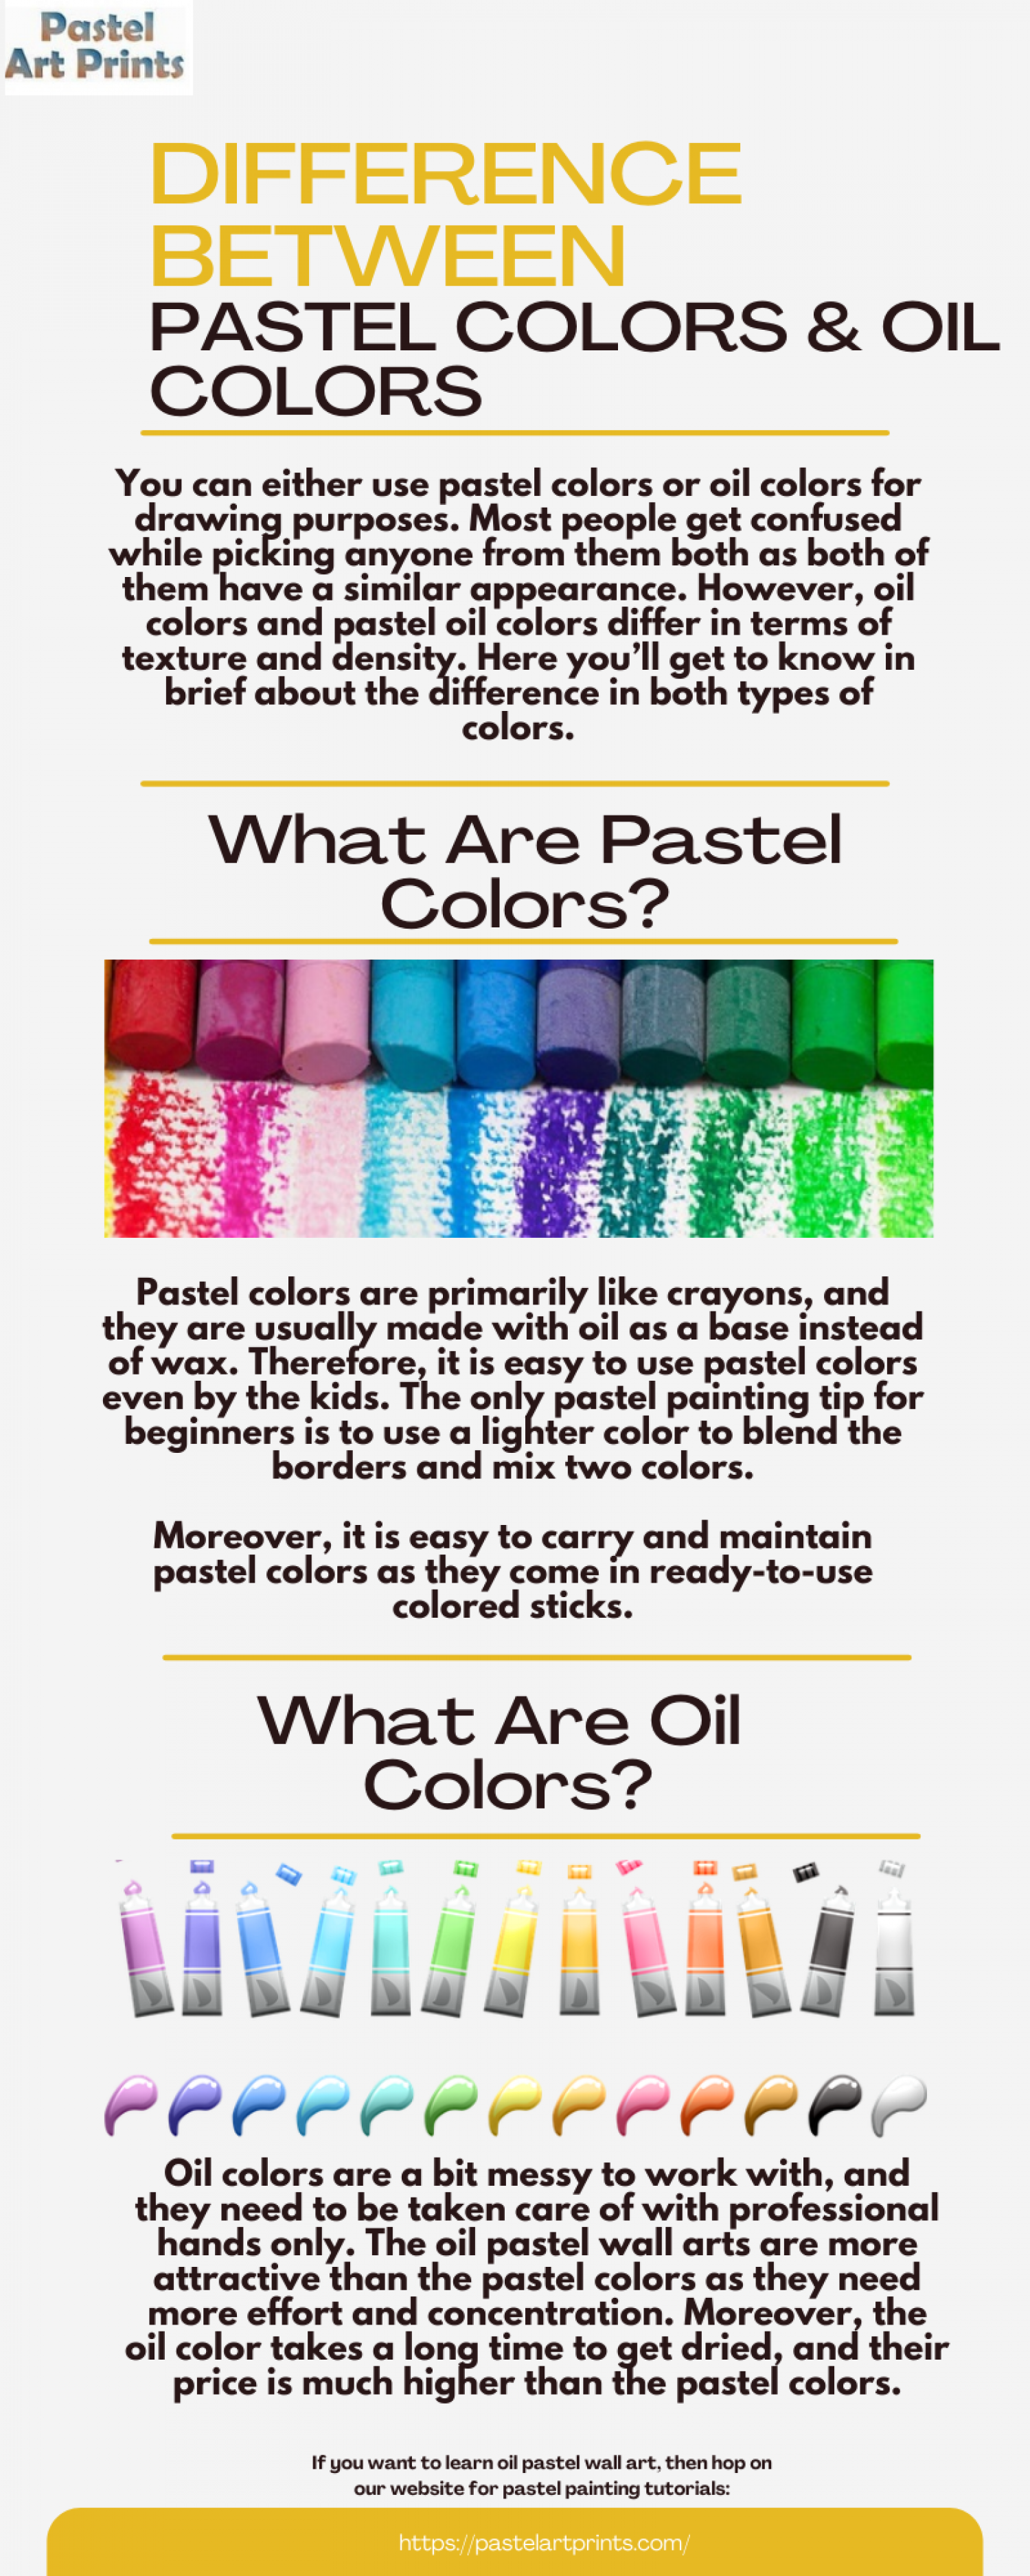 What Is The Difference Between Pastel and Oil Colors Infographic